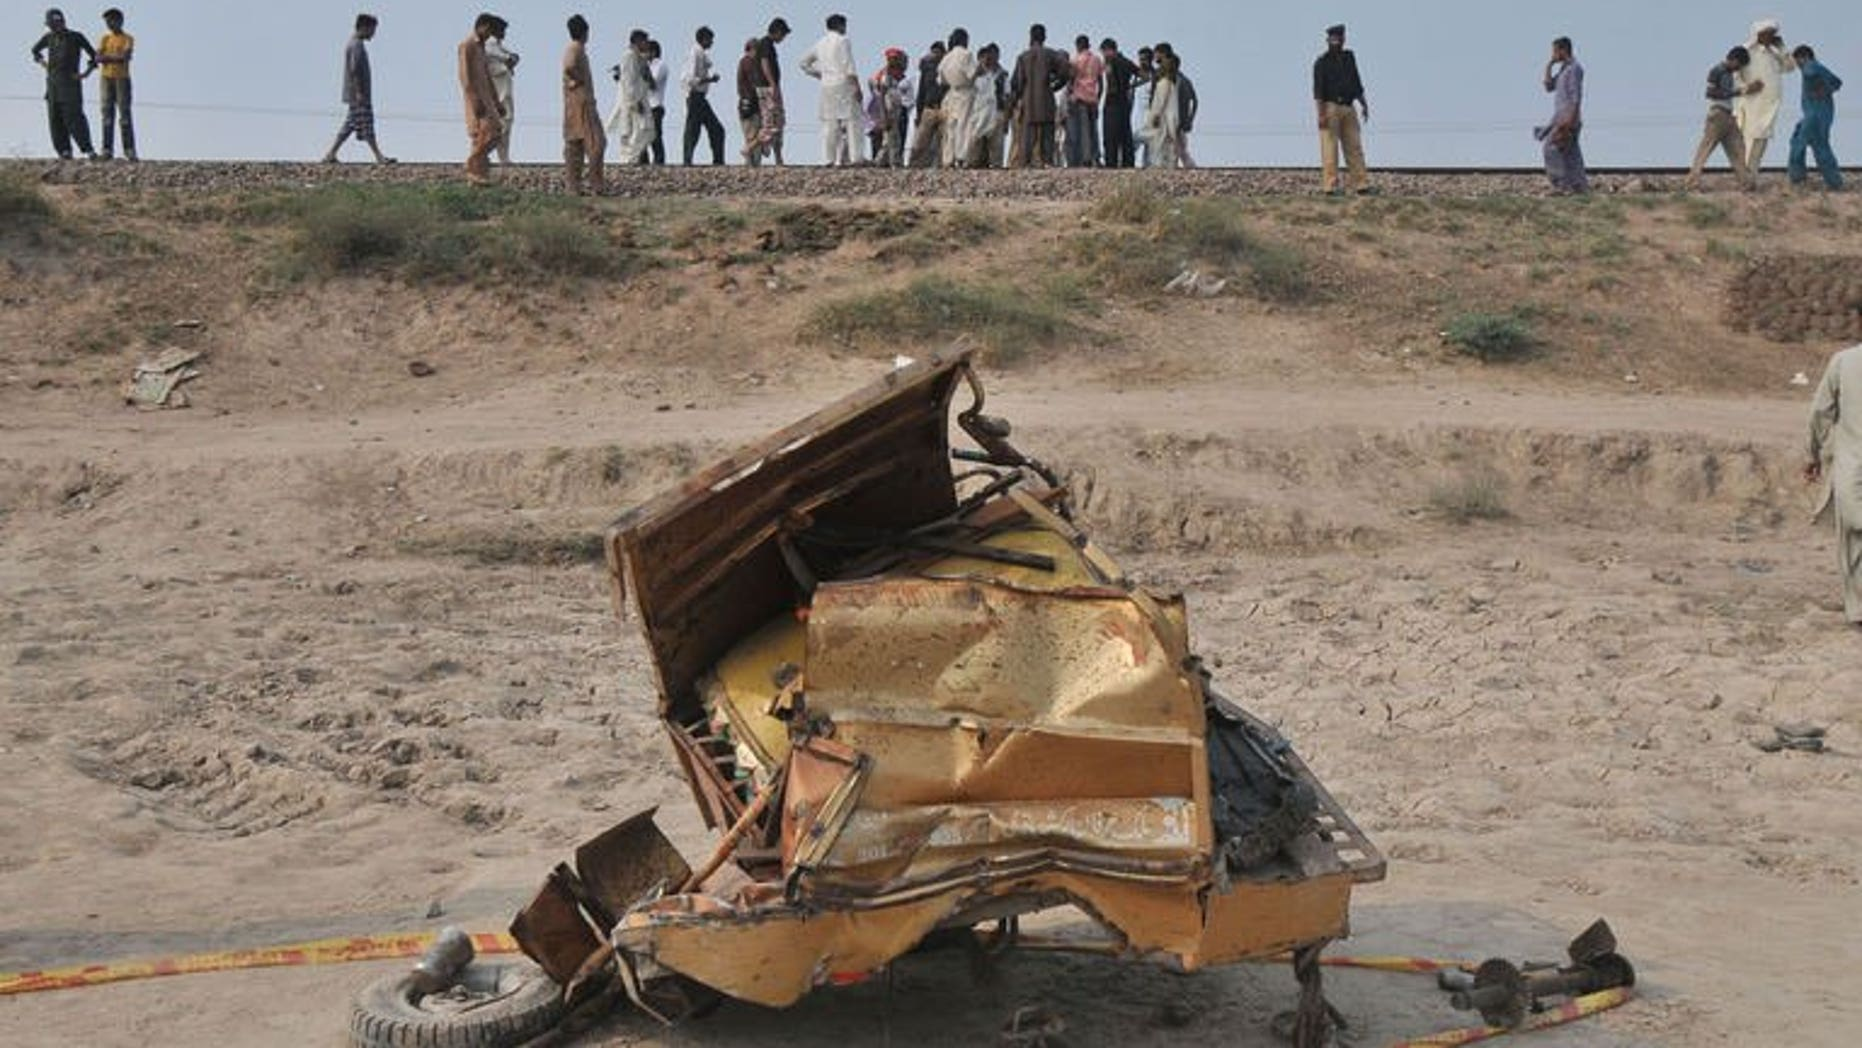 The mangled wreckage of a motorcycle rickshaw after a train collided with it in Khanpur town, Punjab province, on July 6, 2013. At least 14 people, including two children, were killed in the crash.